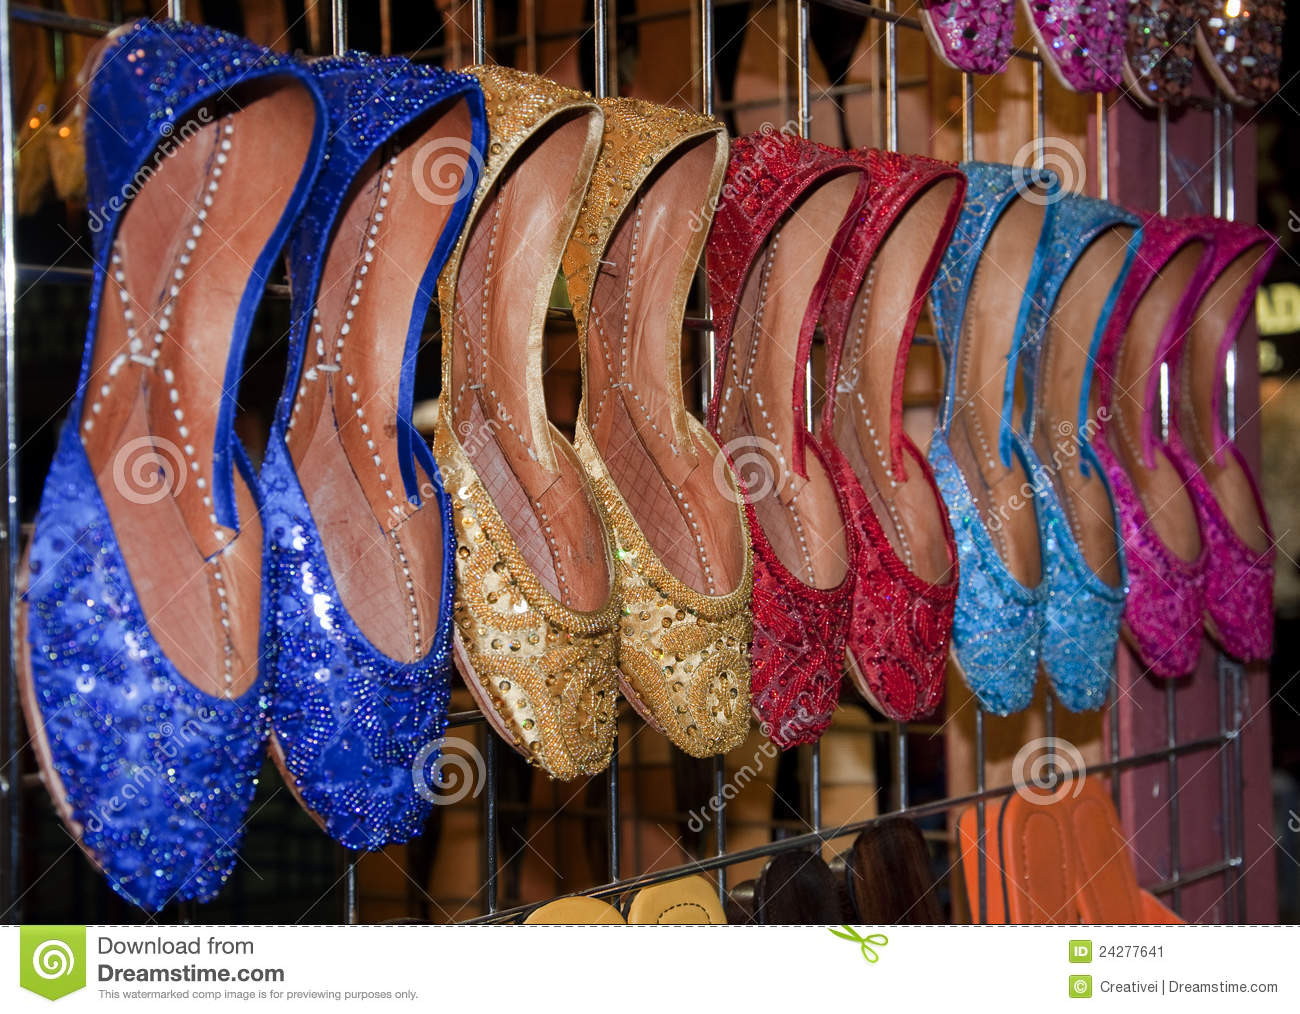 be946a8db213 A collection of colorful Indian and Pakistani style ladies sandal displayed  in a market place.